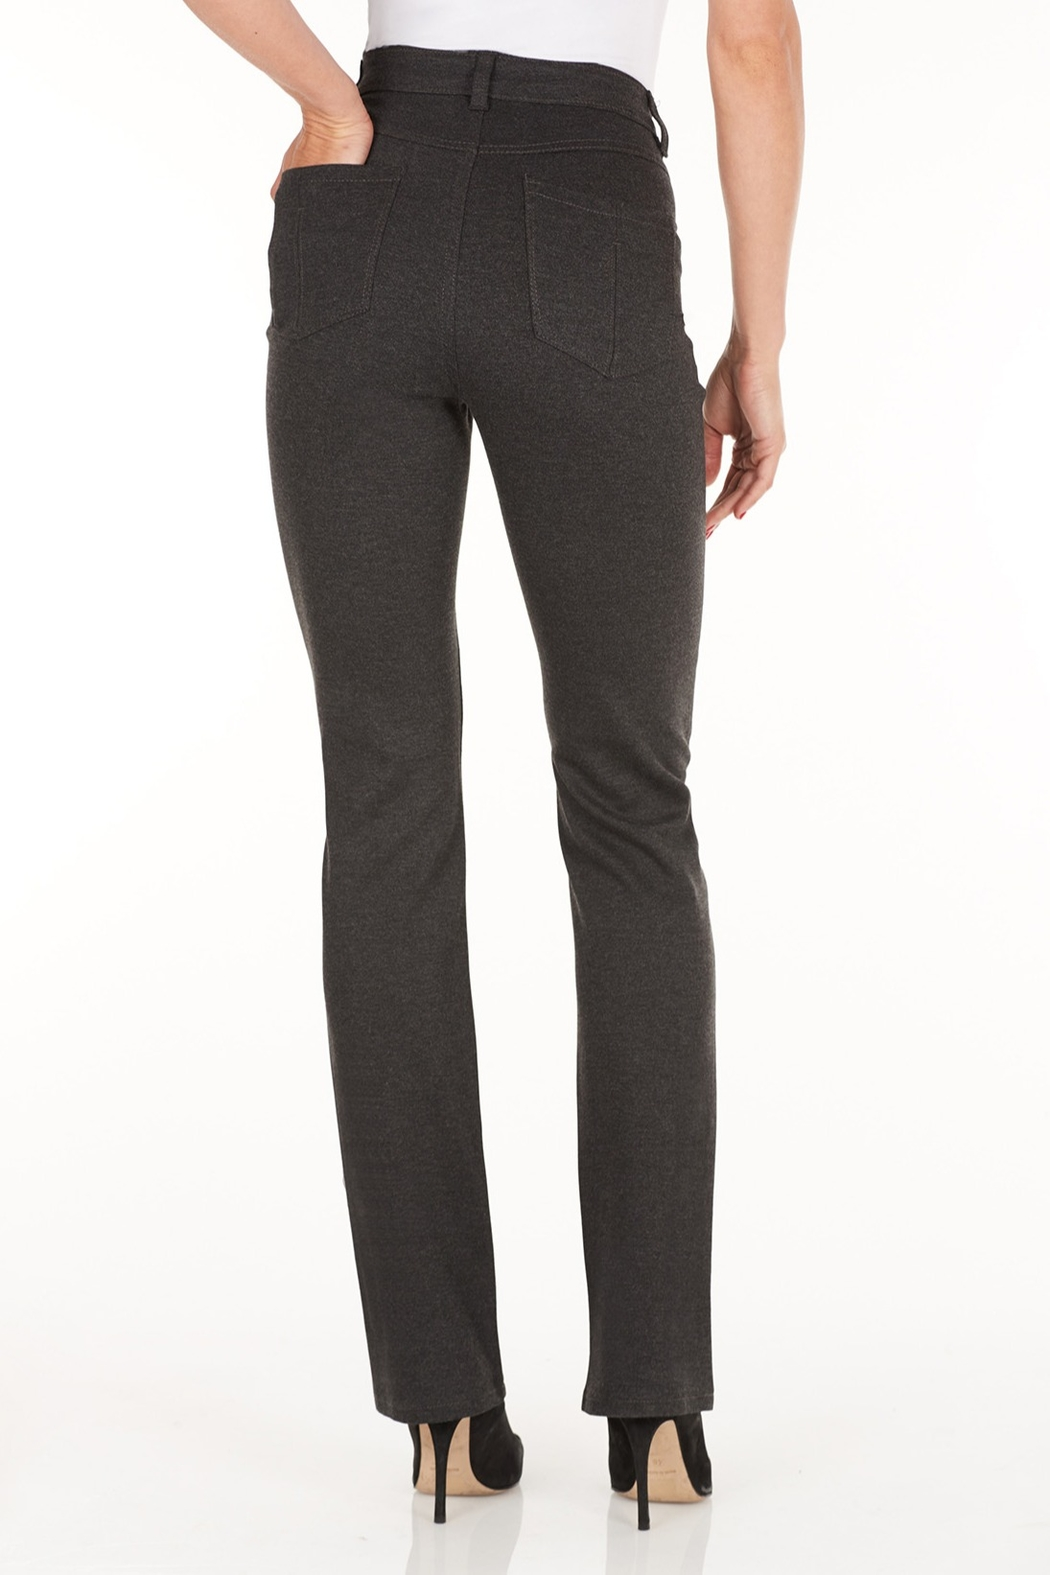 FDJ French Dressing Jeans Suzanne Straight Leg - Side Cropped Image